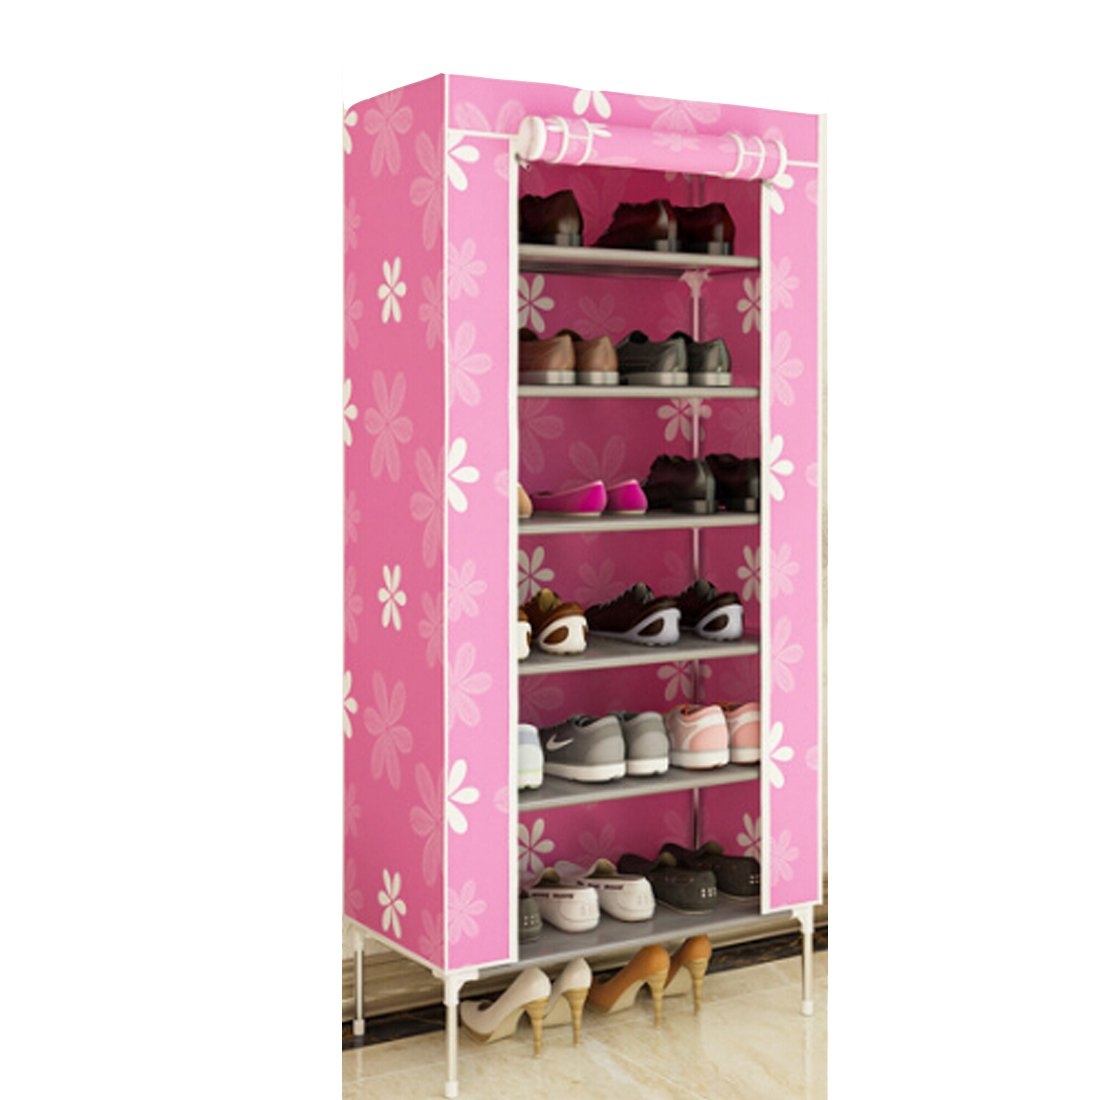 Osave Portable Lightweight 7-Tier Shoe Rack Shoe Storage Organizer for Family or School Use (One size, Pink)